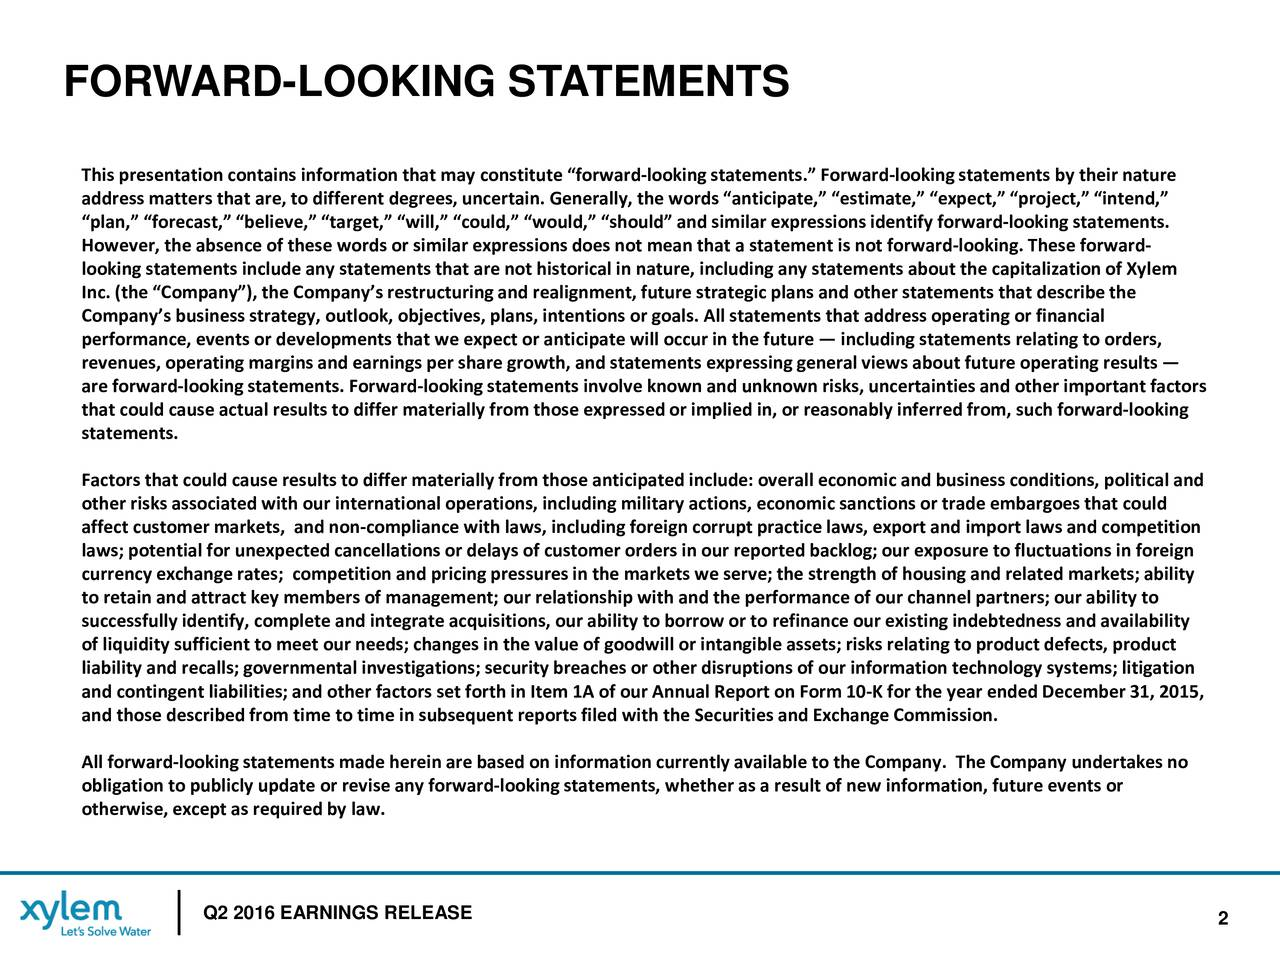 This presentation contains information that may constitute forward-looking statements. Forward-looking statements by their nature address matters that are, to different degrees, uncertain. Generally, the words anticipate, estimate, expect, pr,intend, plan, forecast, believe, target, will, could, would, should and similar expressions identify fo- oking statements. However, the absence of these words or similar expressions does not mean that a statement is not forwardl-ooking. These forward- looking statements include any statements that are not historical in nature, including any statements about the capitalin of Xylem Inc. (the Company), the Companys restructuring and realignment, future strategic plans and other statements that descrithe Companys business strategy, outlook, objectives, plans, intentions or goals. All statements that address operating or finanical performance, events or developments that we expect or anticipate will occur in the future including statements relating to orders, revenues, operating margins and earnings per share growth, and statements expressing general views about future operating reuslts are forward-looking statements.Forward-looking statements involve known and unknown risks, uncertainties and other important factors that could cause actual results to differ materially from those expressed or implied in, or reasonably inferred from, rward-looking statements. Factors that could cause results to differ materially from those anticipated include: overall economic and business condit, olitical and other risks associated with our international operations, including military actions, economic sanctions or trade embargoeshtat could affect customer markets, and non-compliance with laws, including foreign corrupt practice laws, export and import laws and competition laws; potential for unexpected cancellations or delays of customer orders in our reported backlog; our exposure to fluctns in foreign currency exchange rates; competition and pricing pressuresin the markets we serve; the strength of housing and related market;sability to retain and attract key members of management; our relationship with and the performance of our channel partners; our abitliy to successfully identify, complete and integrate acquisitions, our ability to borrow or to refinance our existing indebtead availability of liquidity sufficient to meet our needs; changes in the value of goodwill or intangible assets; risks relating to product defects, product liability and recalls; governmental investigations; security breaches or other disruptions of our information technologtms; litigation and contingent liabilities; and other factors set forth in Item 1A of our Annual Report on Fo-K for the year endedDecember 31, 2015, and those describedfrom time to time in subsequent reports filed with the Securities and Exchange Commission. All forward-looking statements made herein are based on information currently available to the Company.The Company undertakesno obligation to publicly update or revise any forward-looking statements, whether as a result of new information, future events or otherwise, except as required by law. XYLEM PQ2 2016 EARNINGS RELEASEL 2